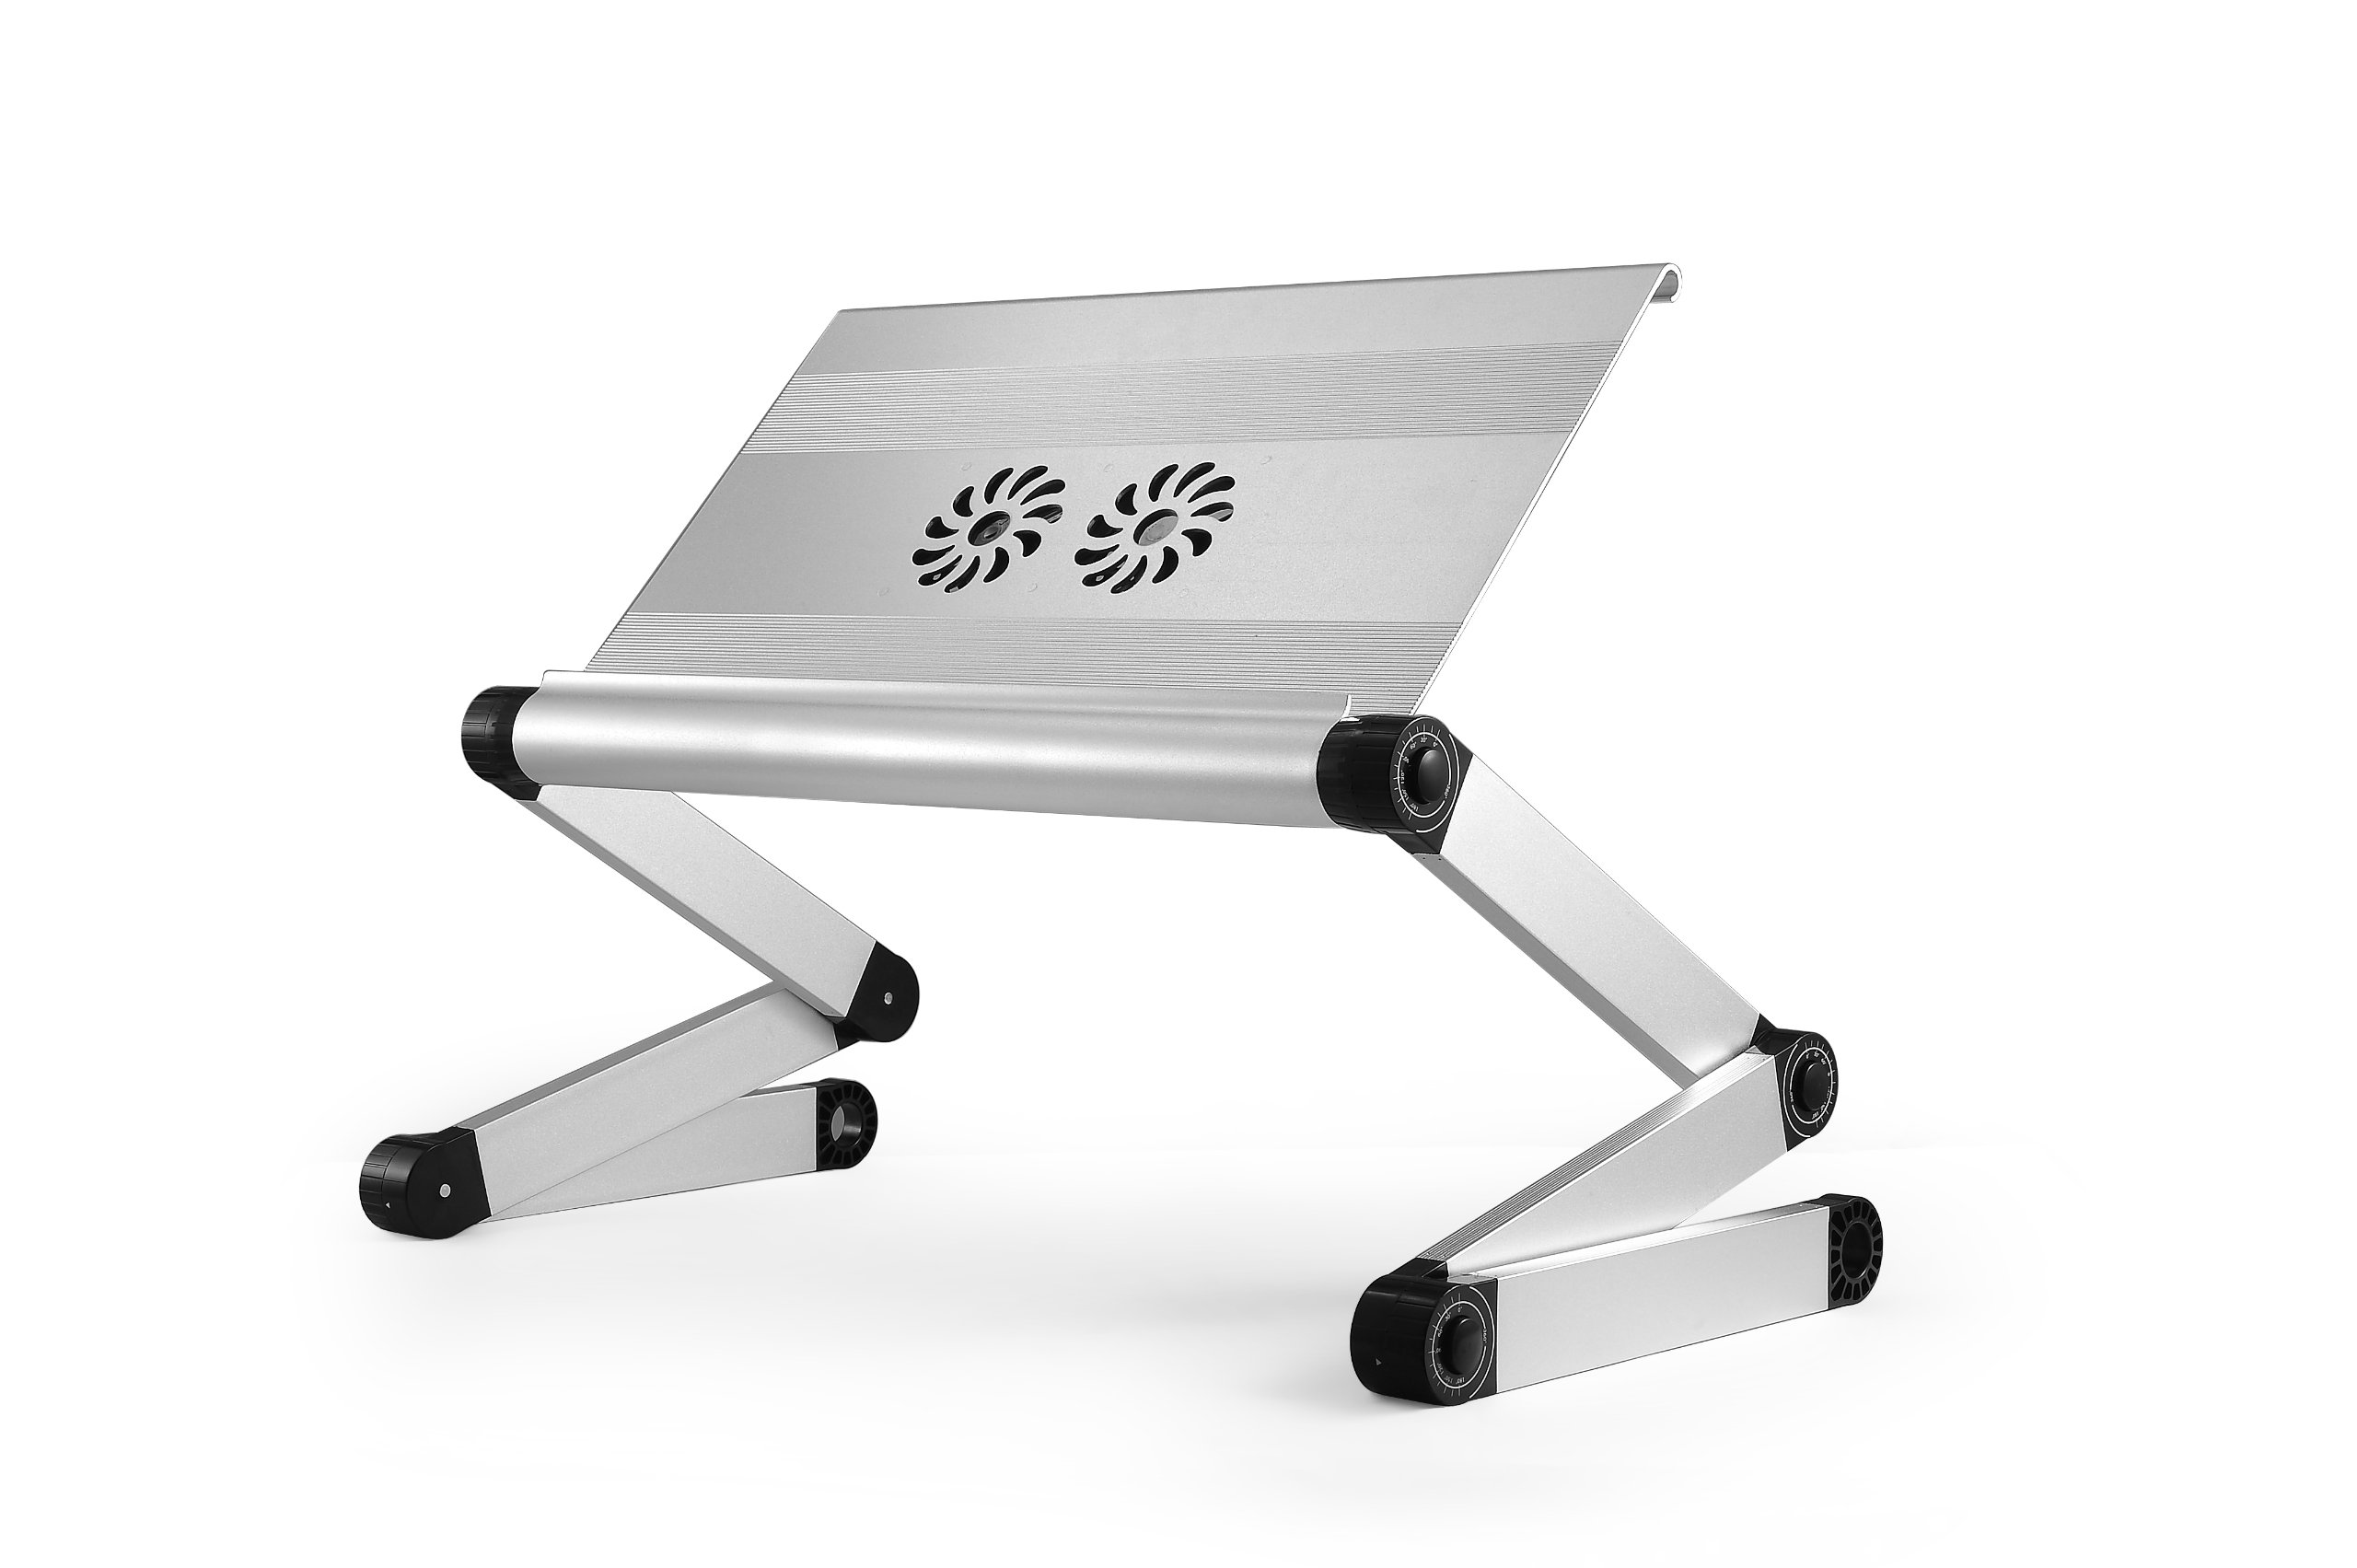 Uncaged Ergonomics -WEEFHs WorkEZ Executive (Silver + 2 Fans and 3 USB Ports) Adjustable Ergonomic Laptop and Tablet Stand by Uncaged Ergonomics